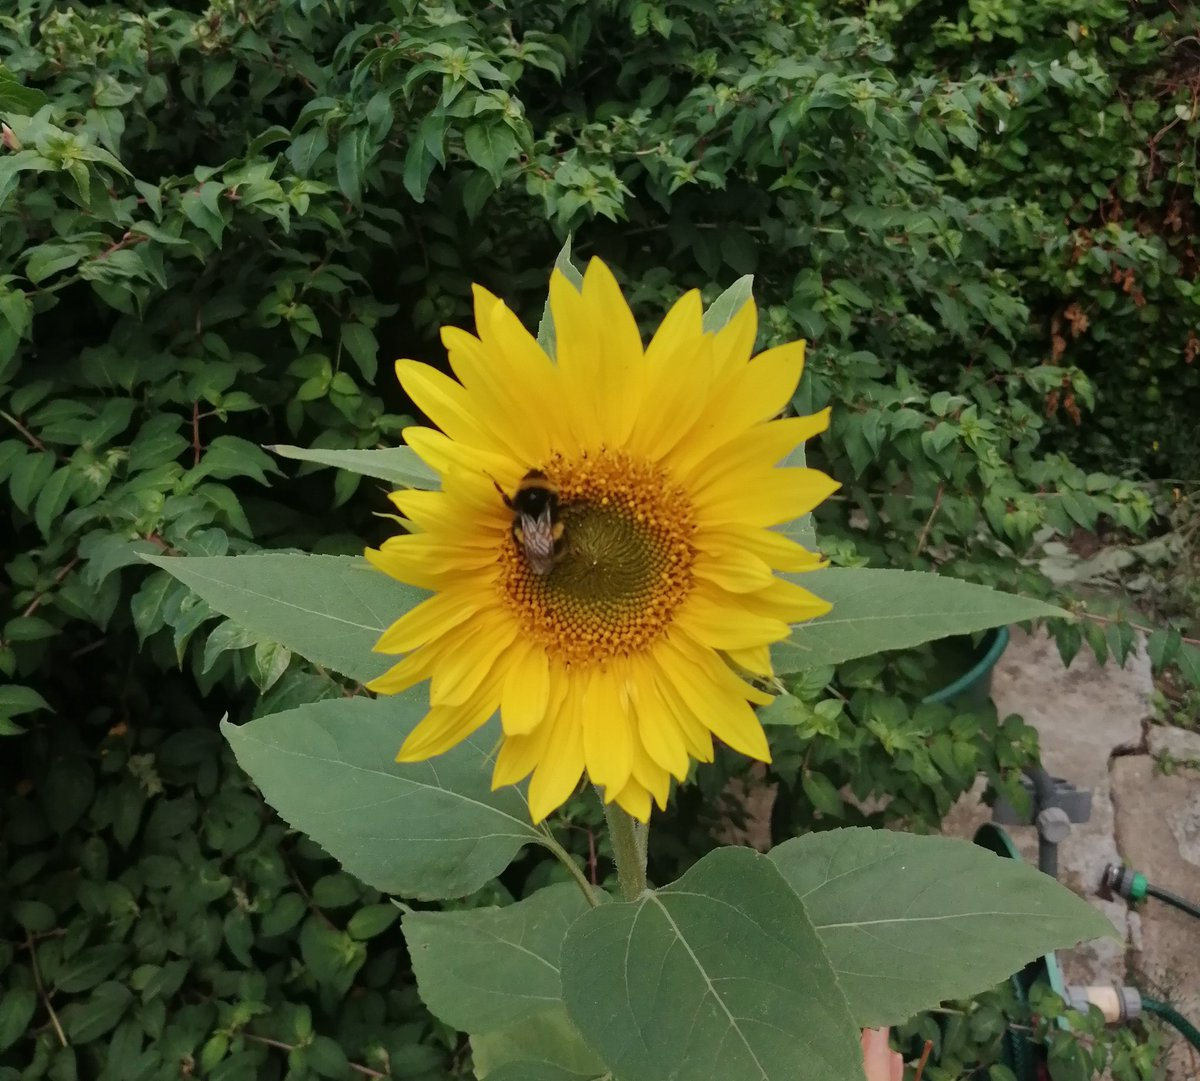 First sunflower of the season is out!